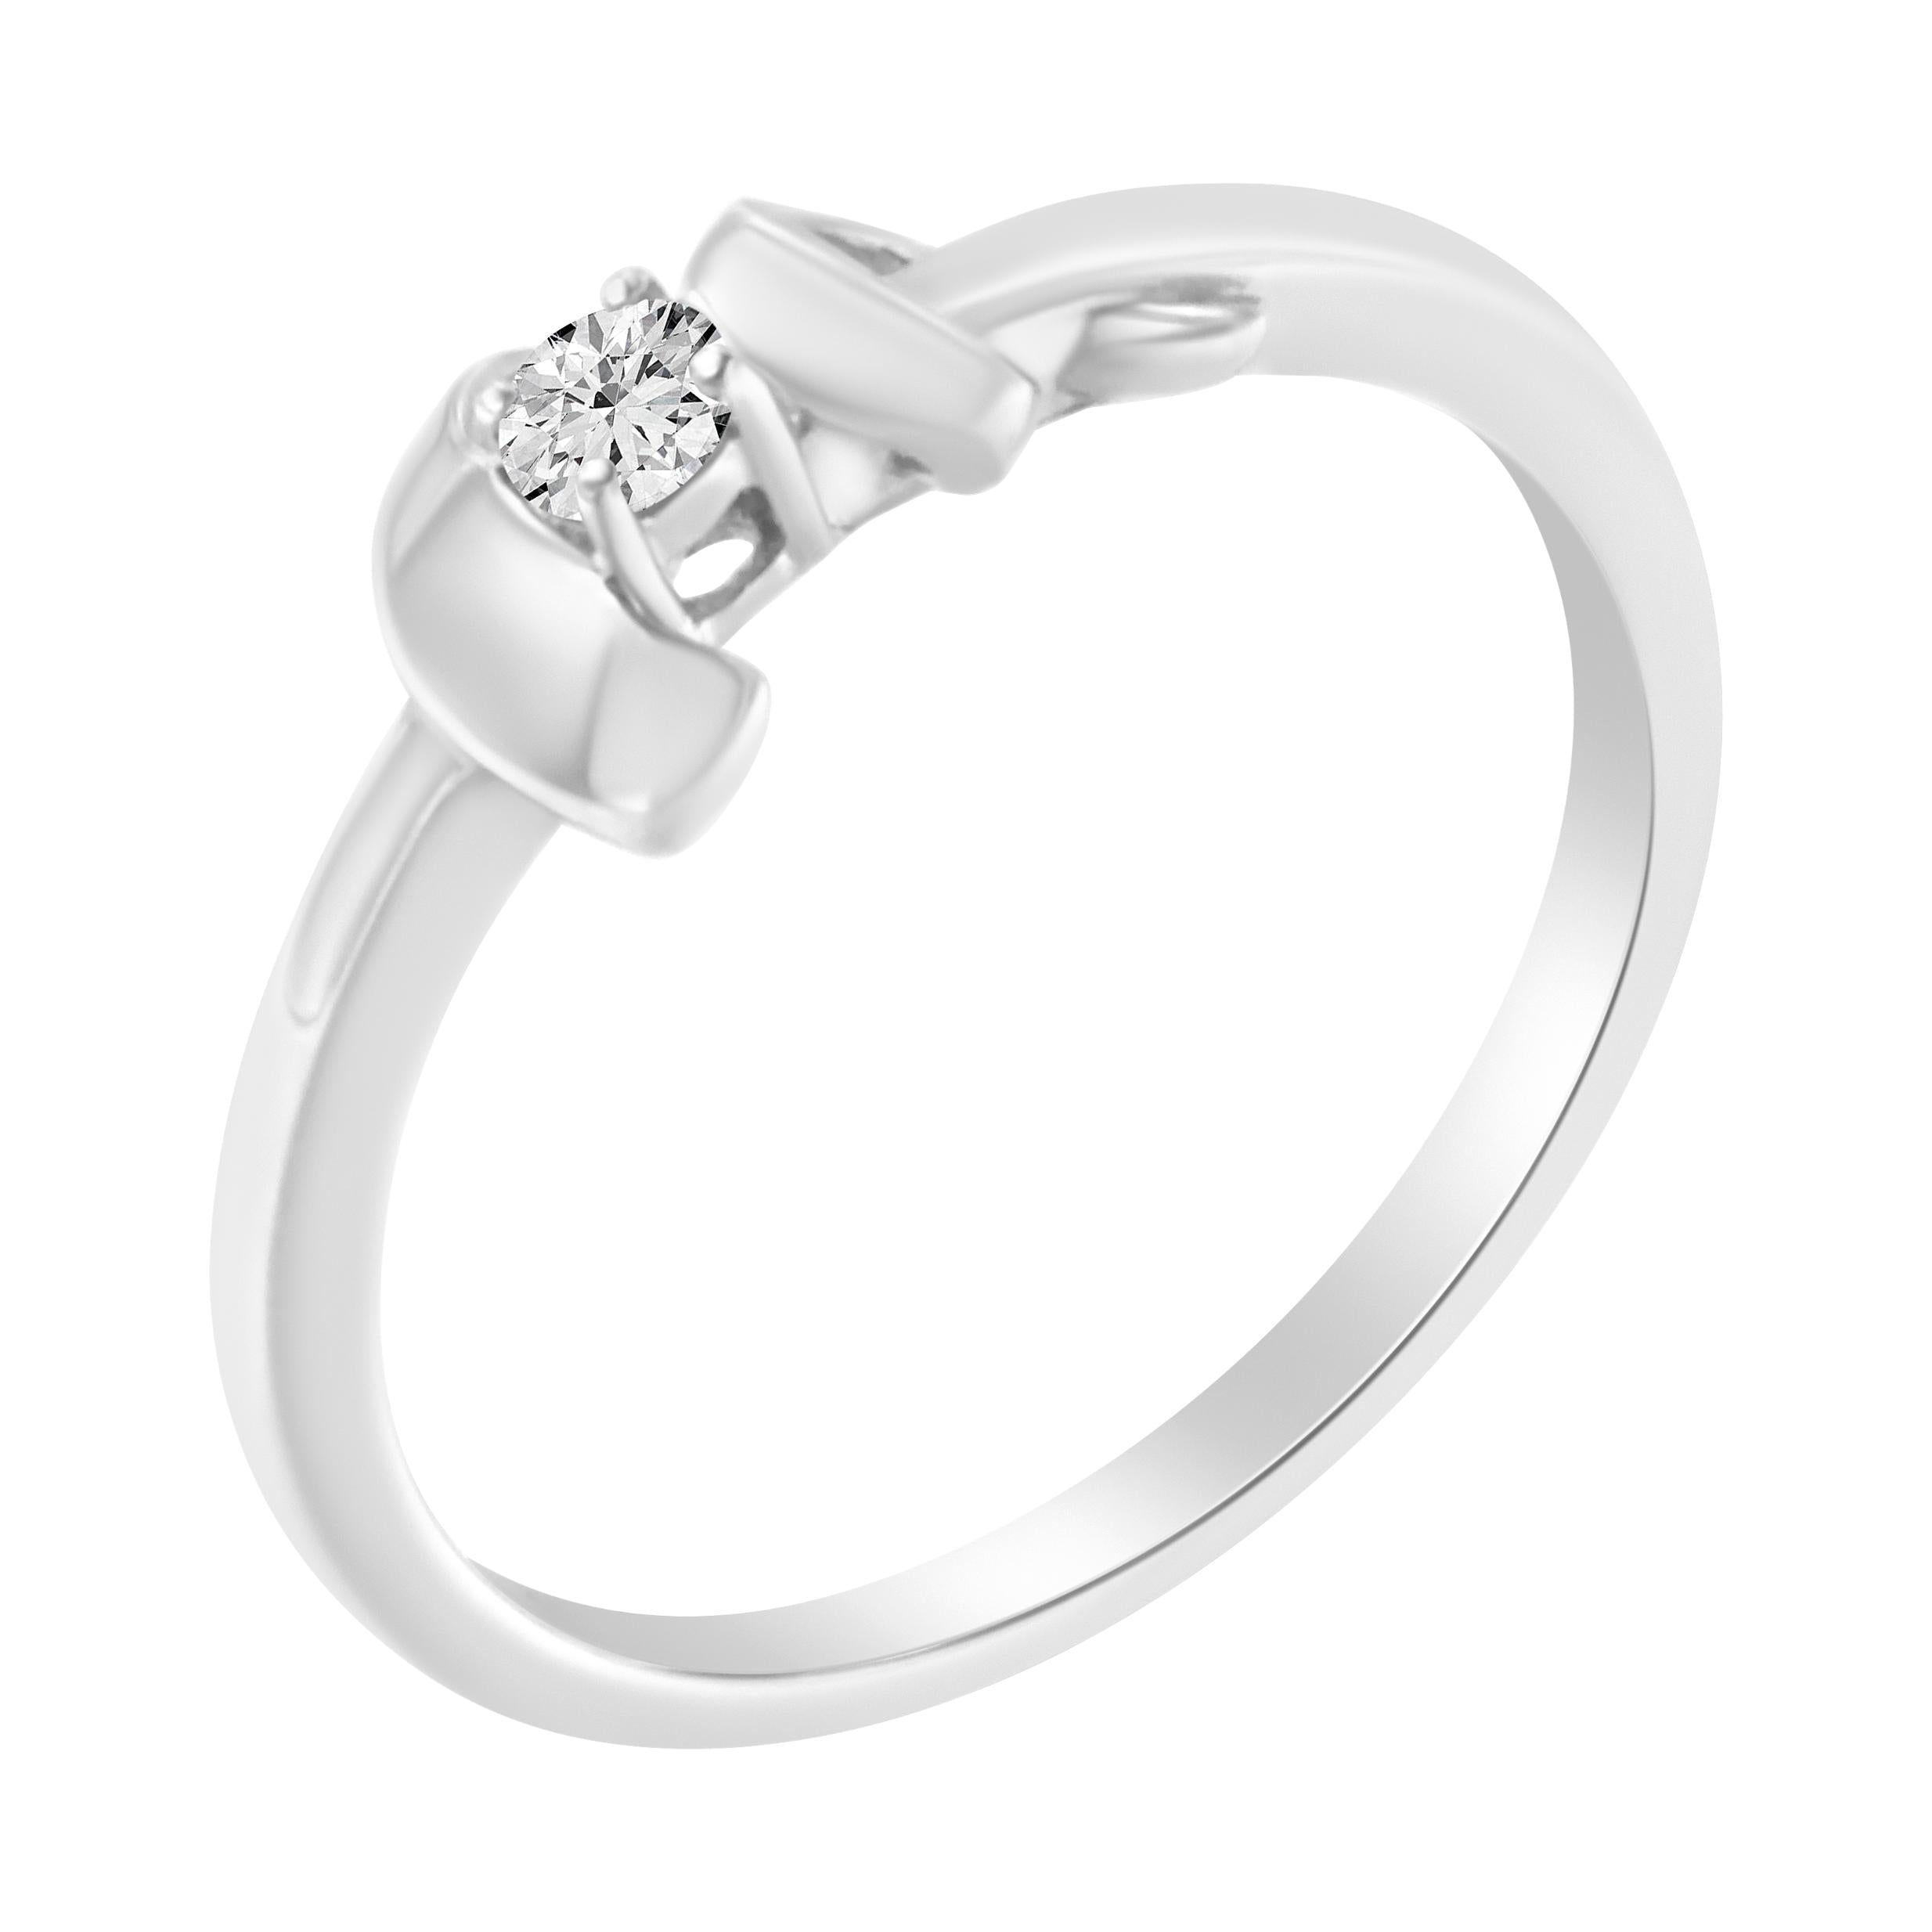 10K White Gold 1/10ct. TDW Diamond Promise Ring (H-I,SI2-I1)